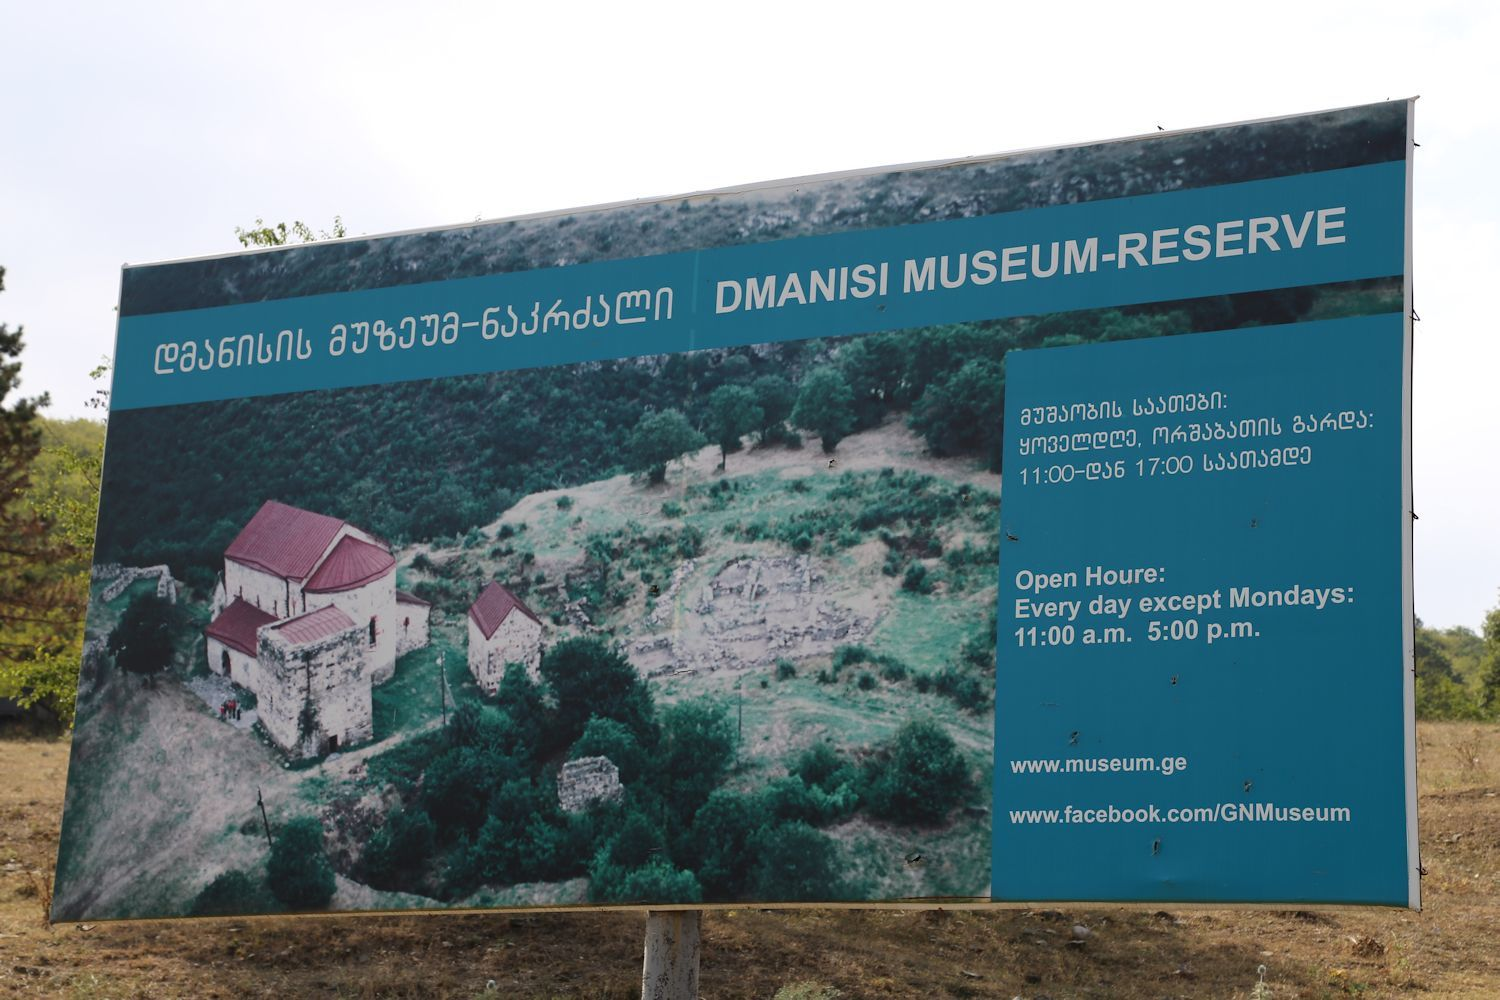 Dmanisi Museum-Reserve working hours